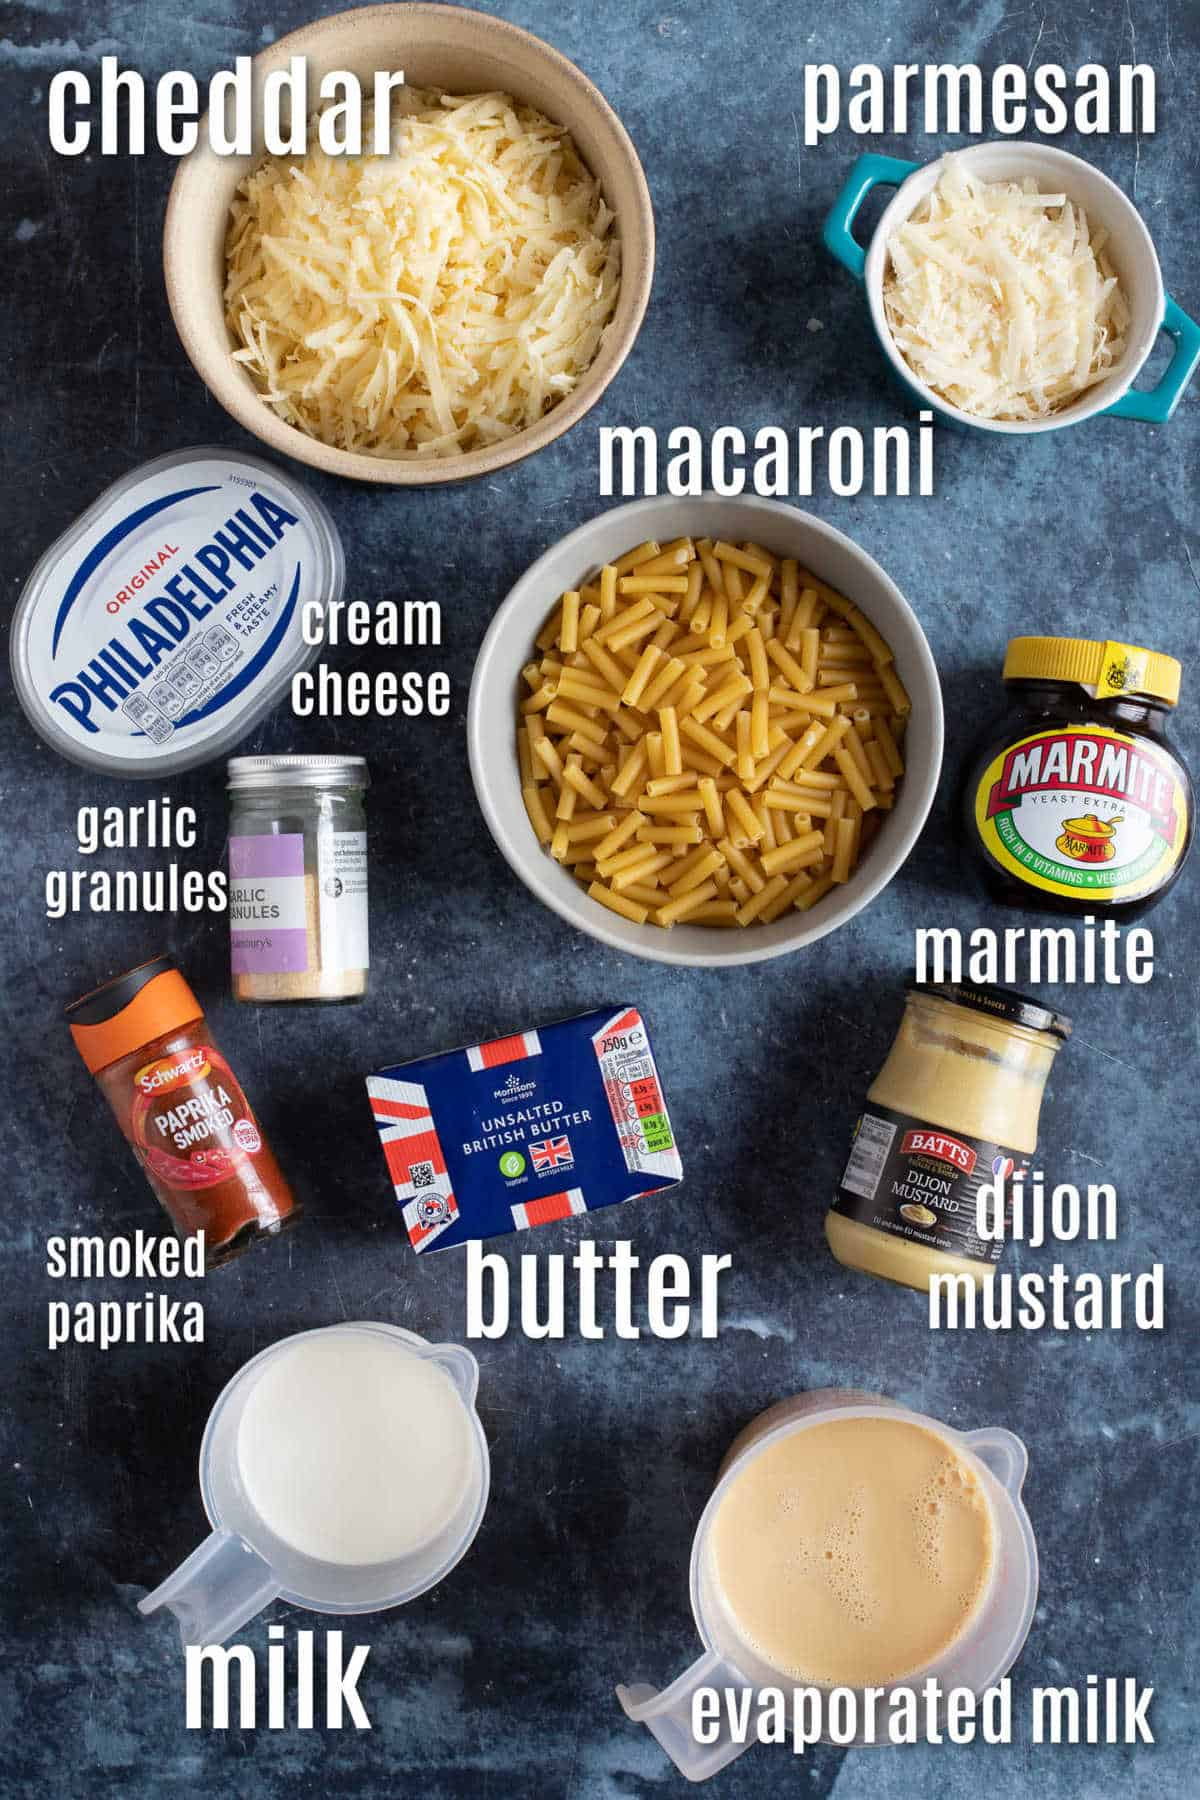 Ingredients needed to make slow cooker macaroni cheese